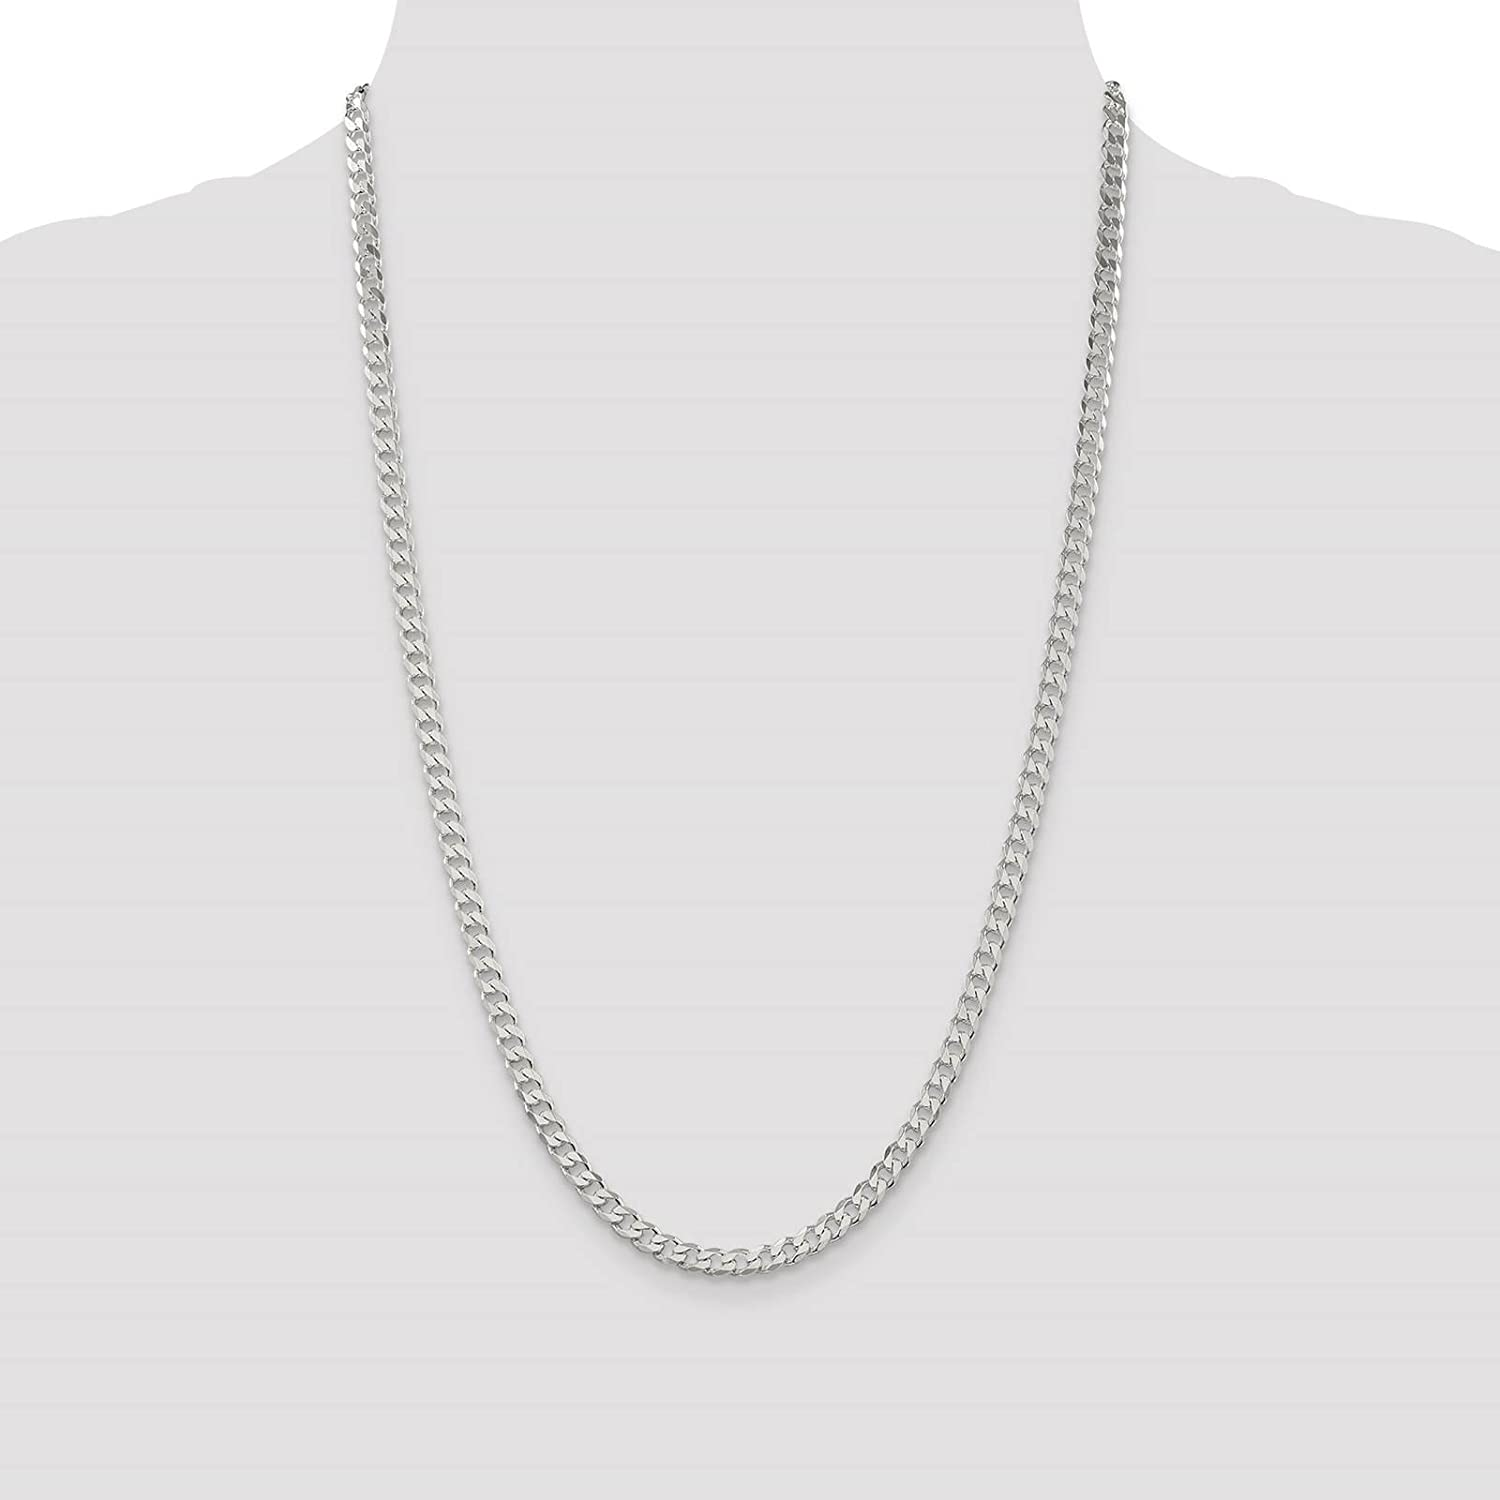 925 Sterling Silver Solid 4.2mm Polished Curb Link Chain Necklace 7-24